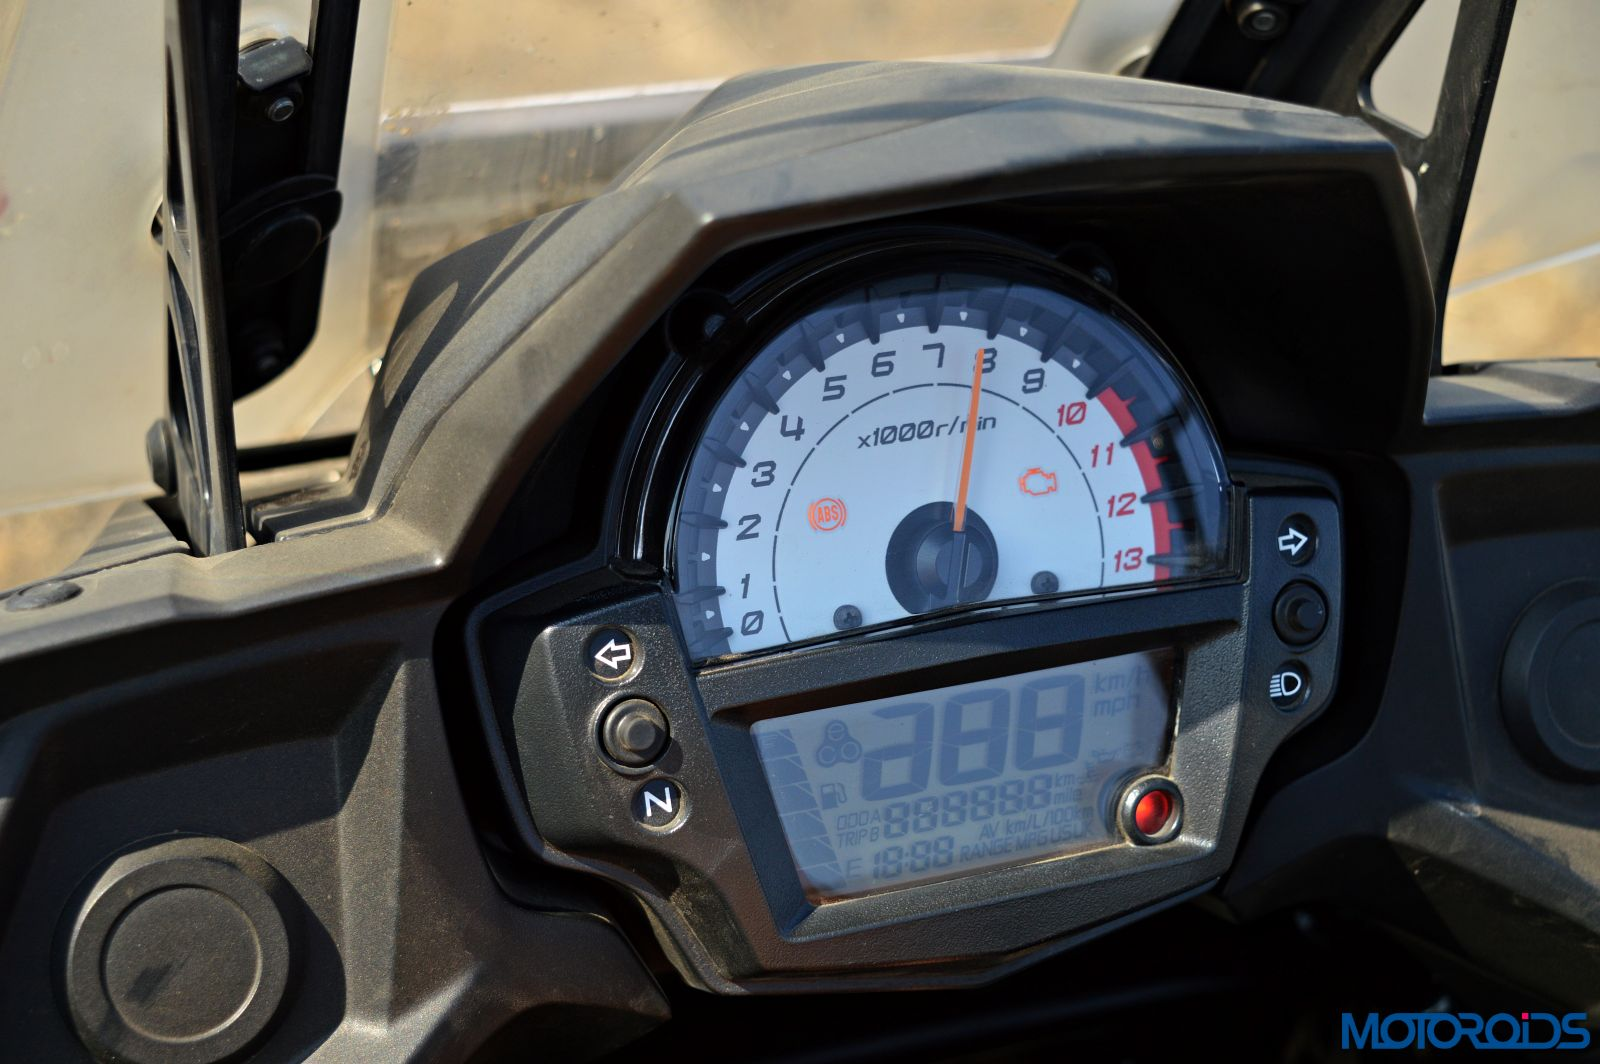 Kawasaki Versys 650 - Review - Details - Instrument Cluster (3)